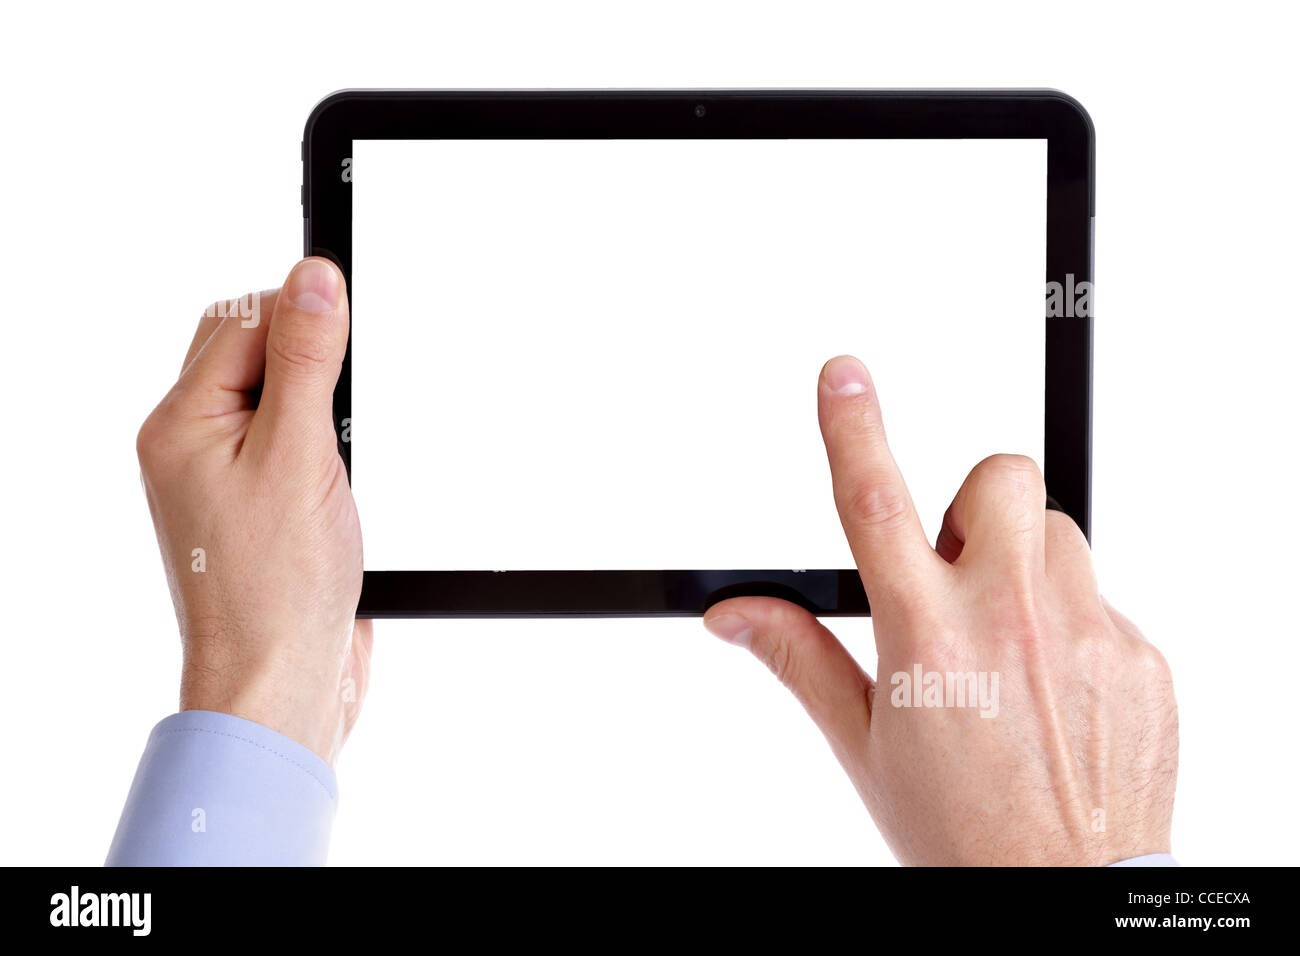 Holding and touching digital tablet - Stock Image